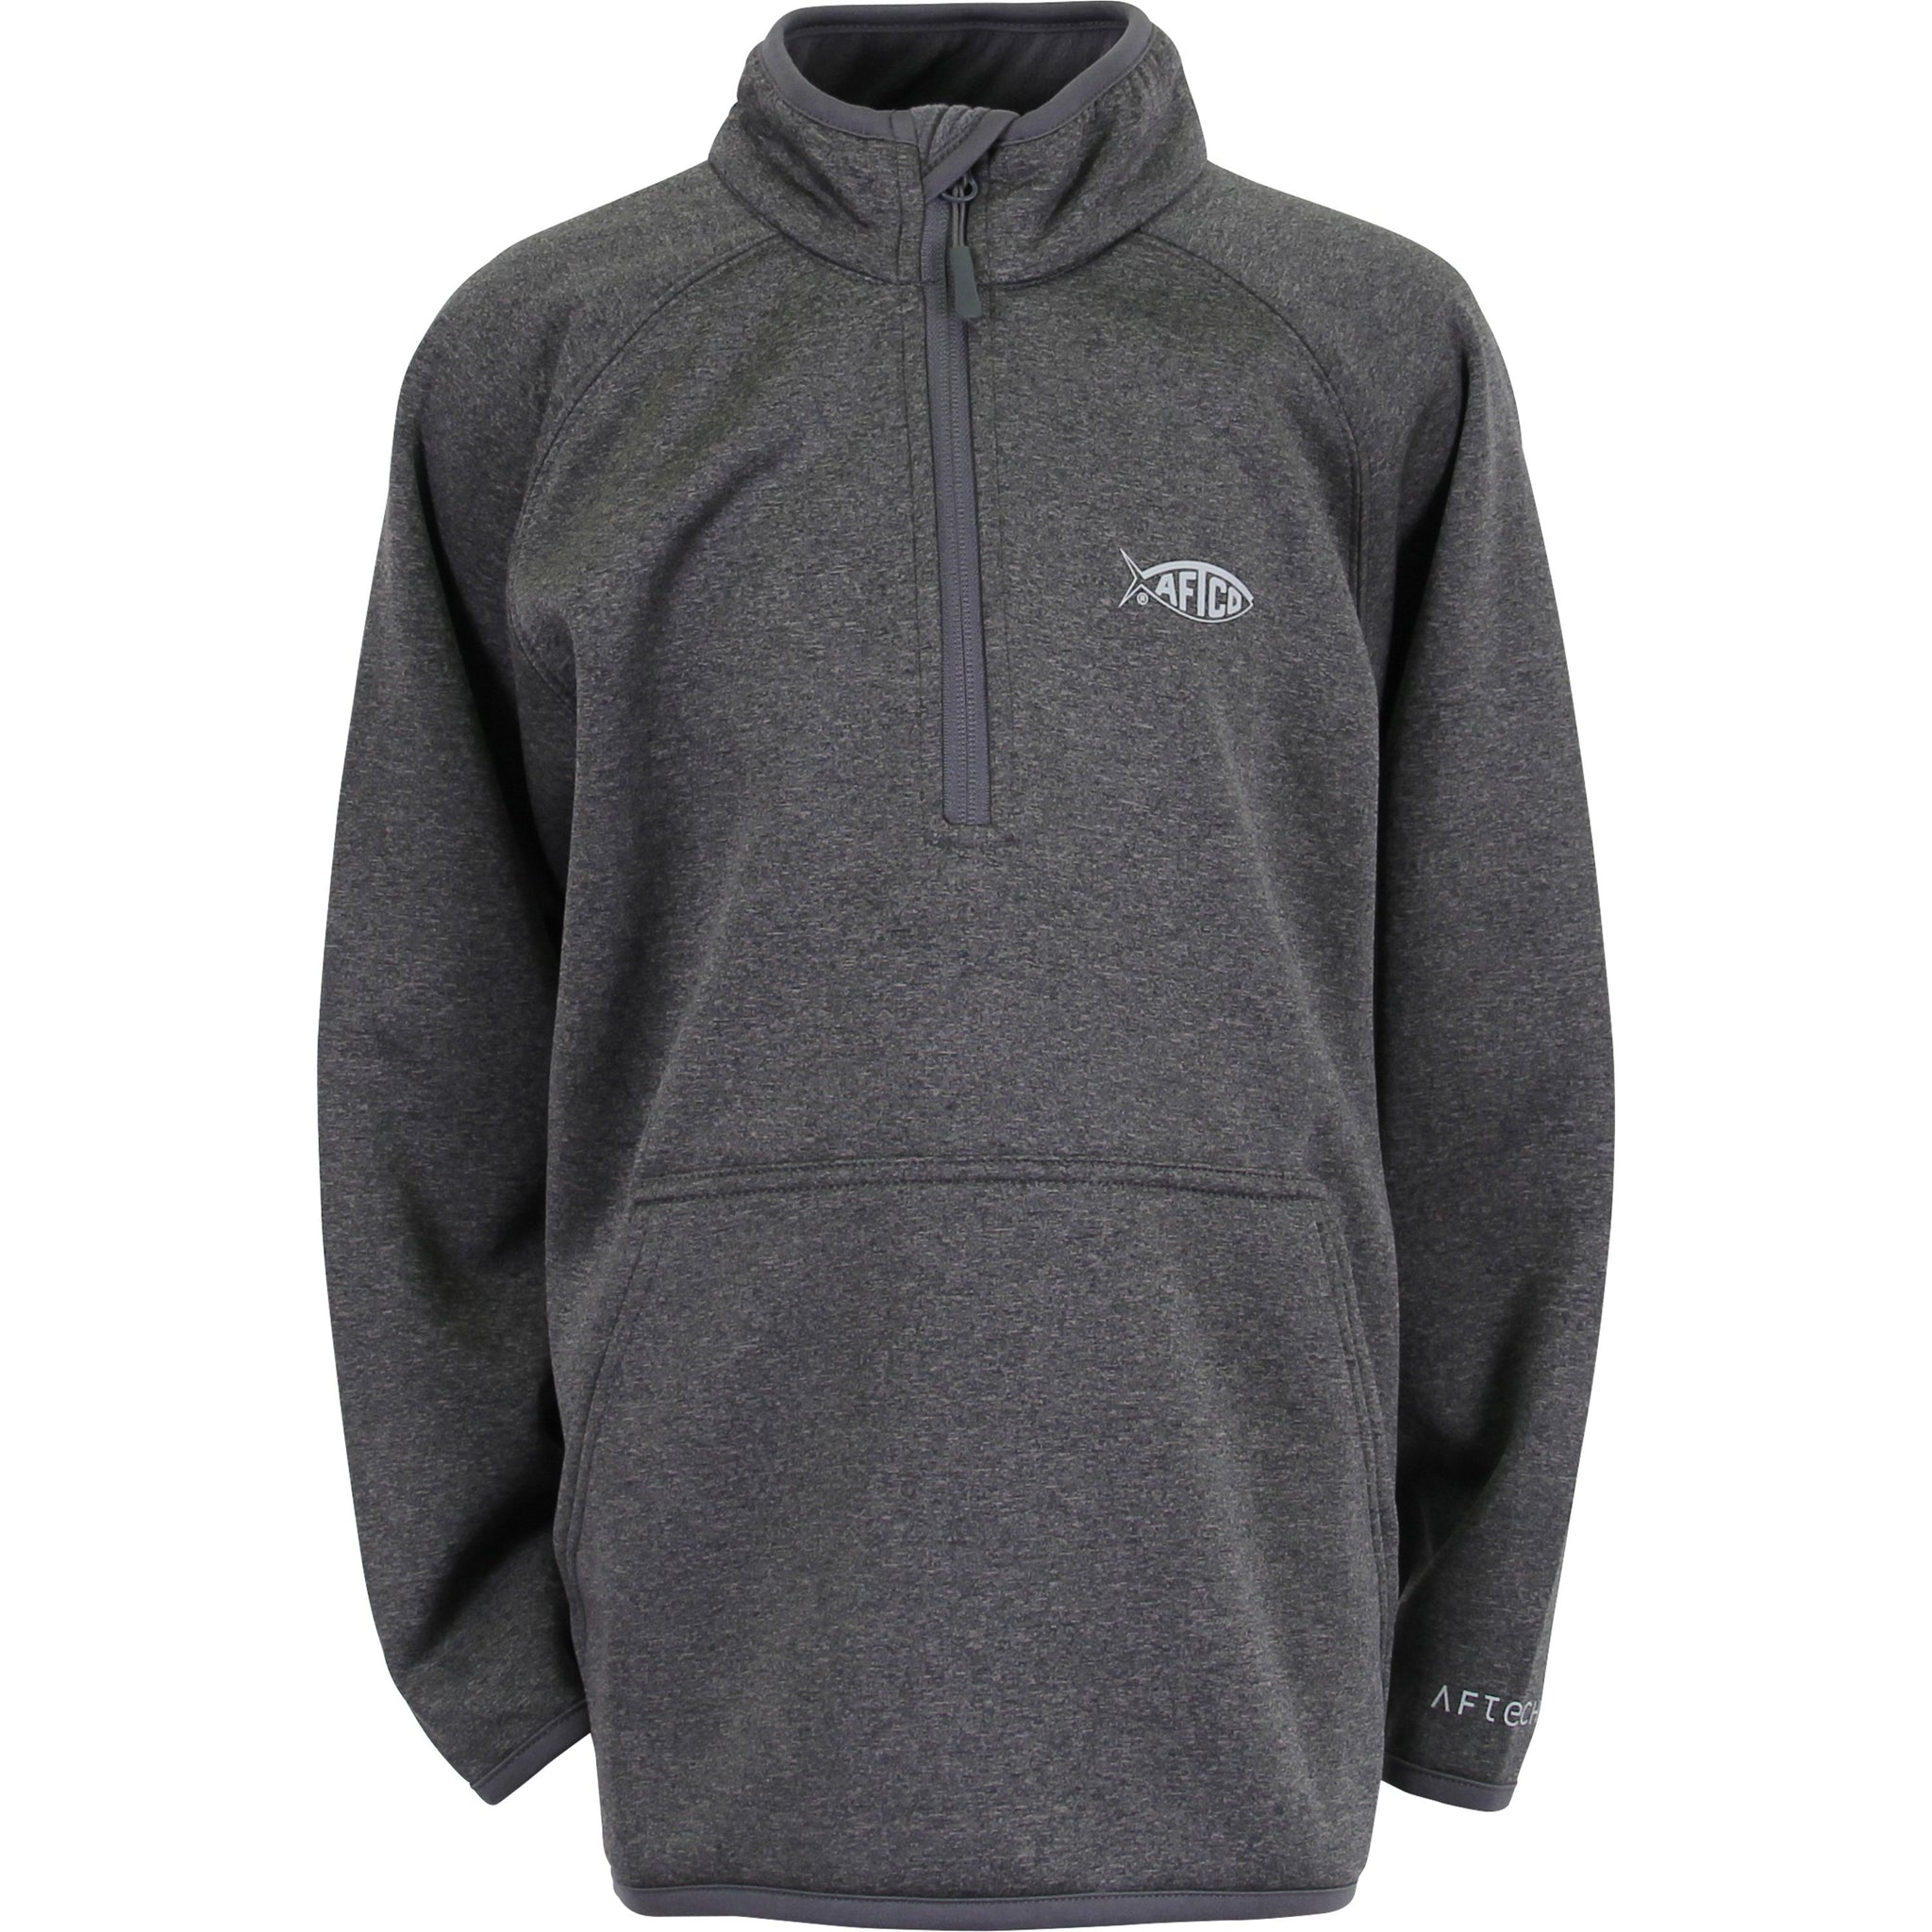 Youth Vista Quarter Zip Fleece